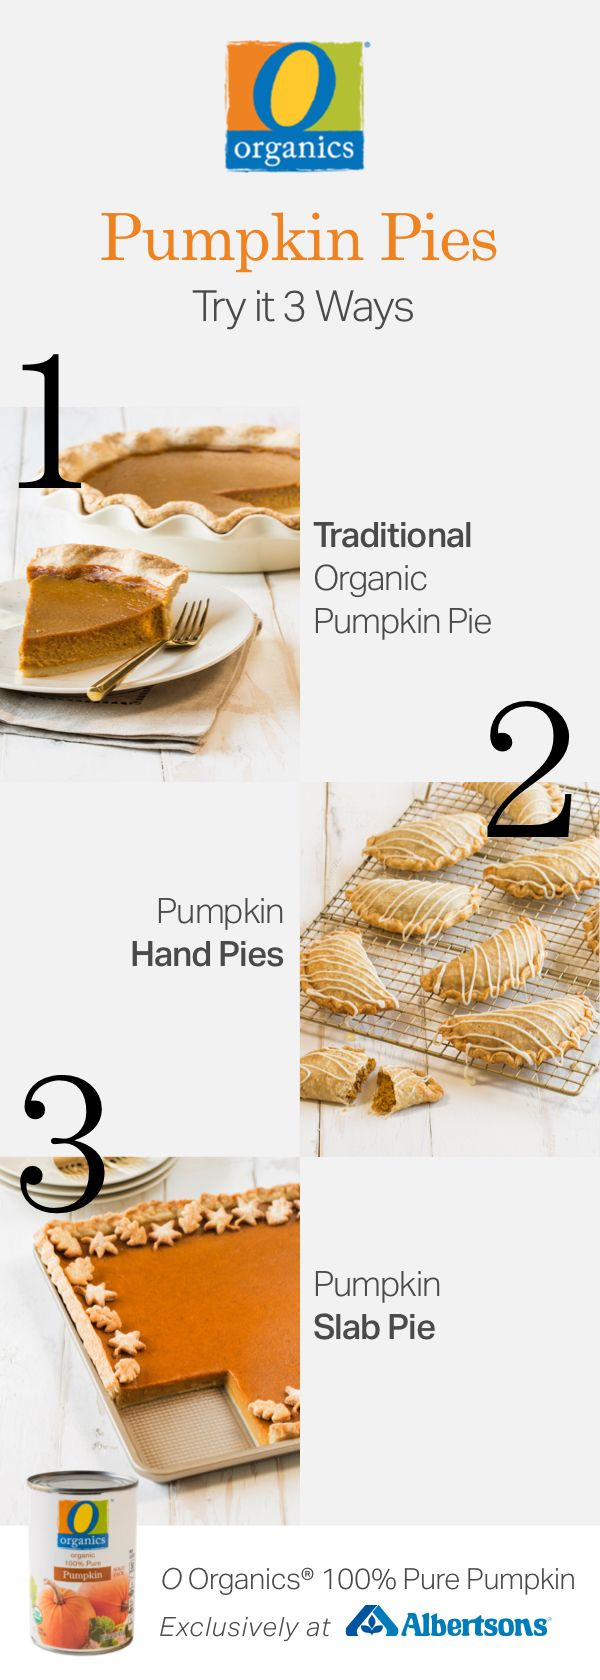 Step up your holiday baking game with these three simple pumpkin pie recipes! From traditional pumpkin pie to hand pies and slab pies, there is something for everyone to enjoy. All three of these festive desserts feature O Organics® 100% Pure Pumpkin, found exclusively at your local Albertsons, and are filled with homemade love and seasonal flavor.